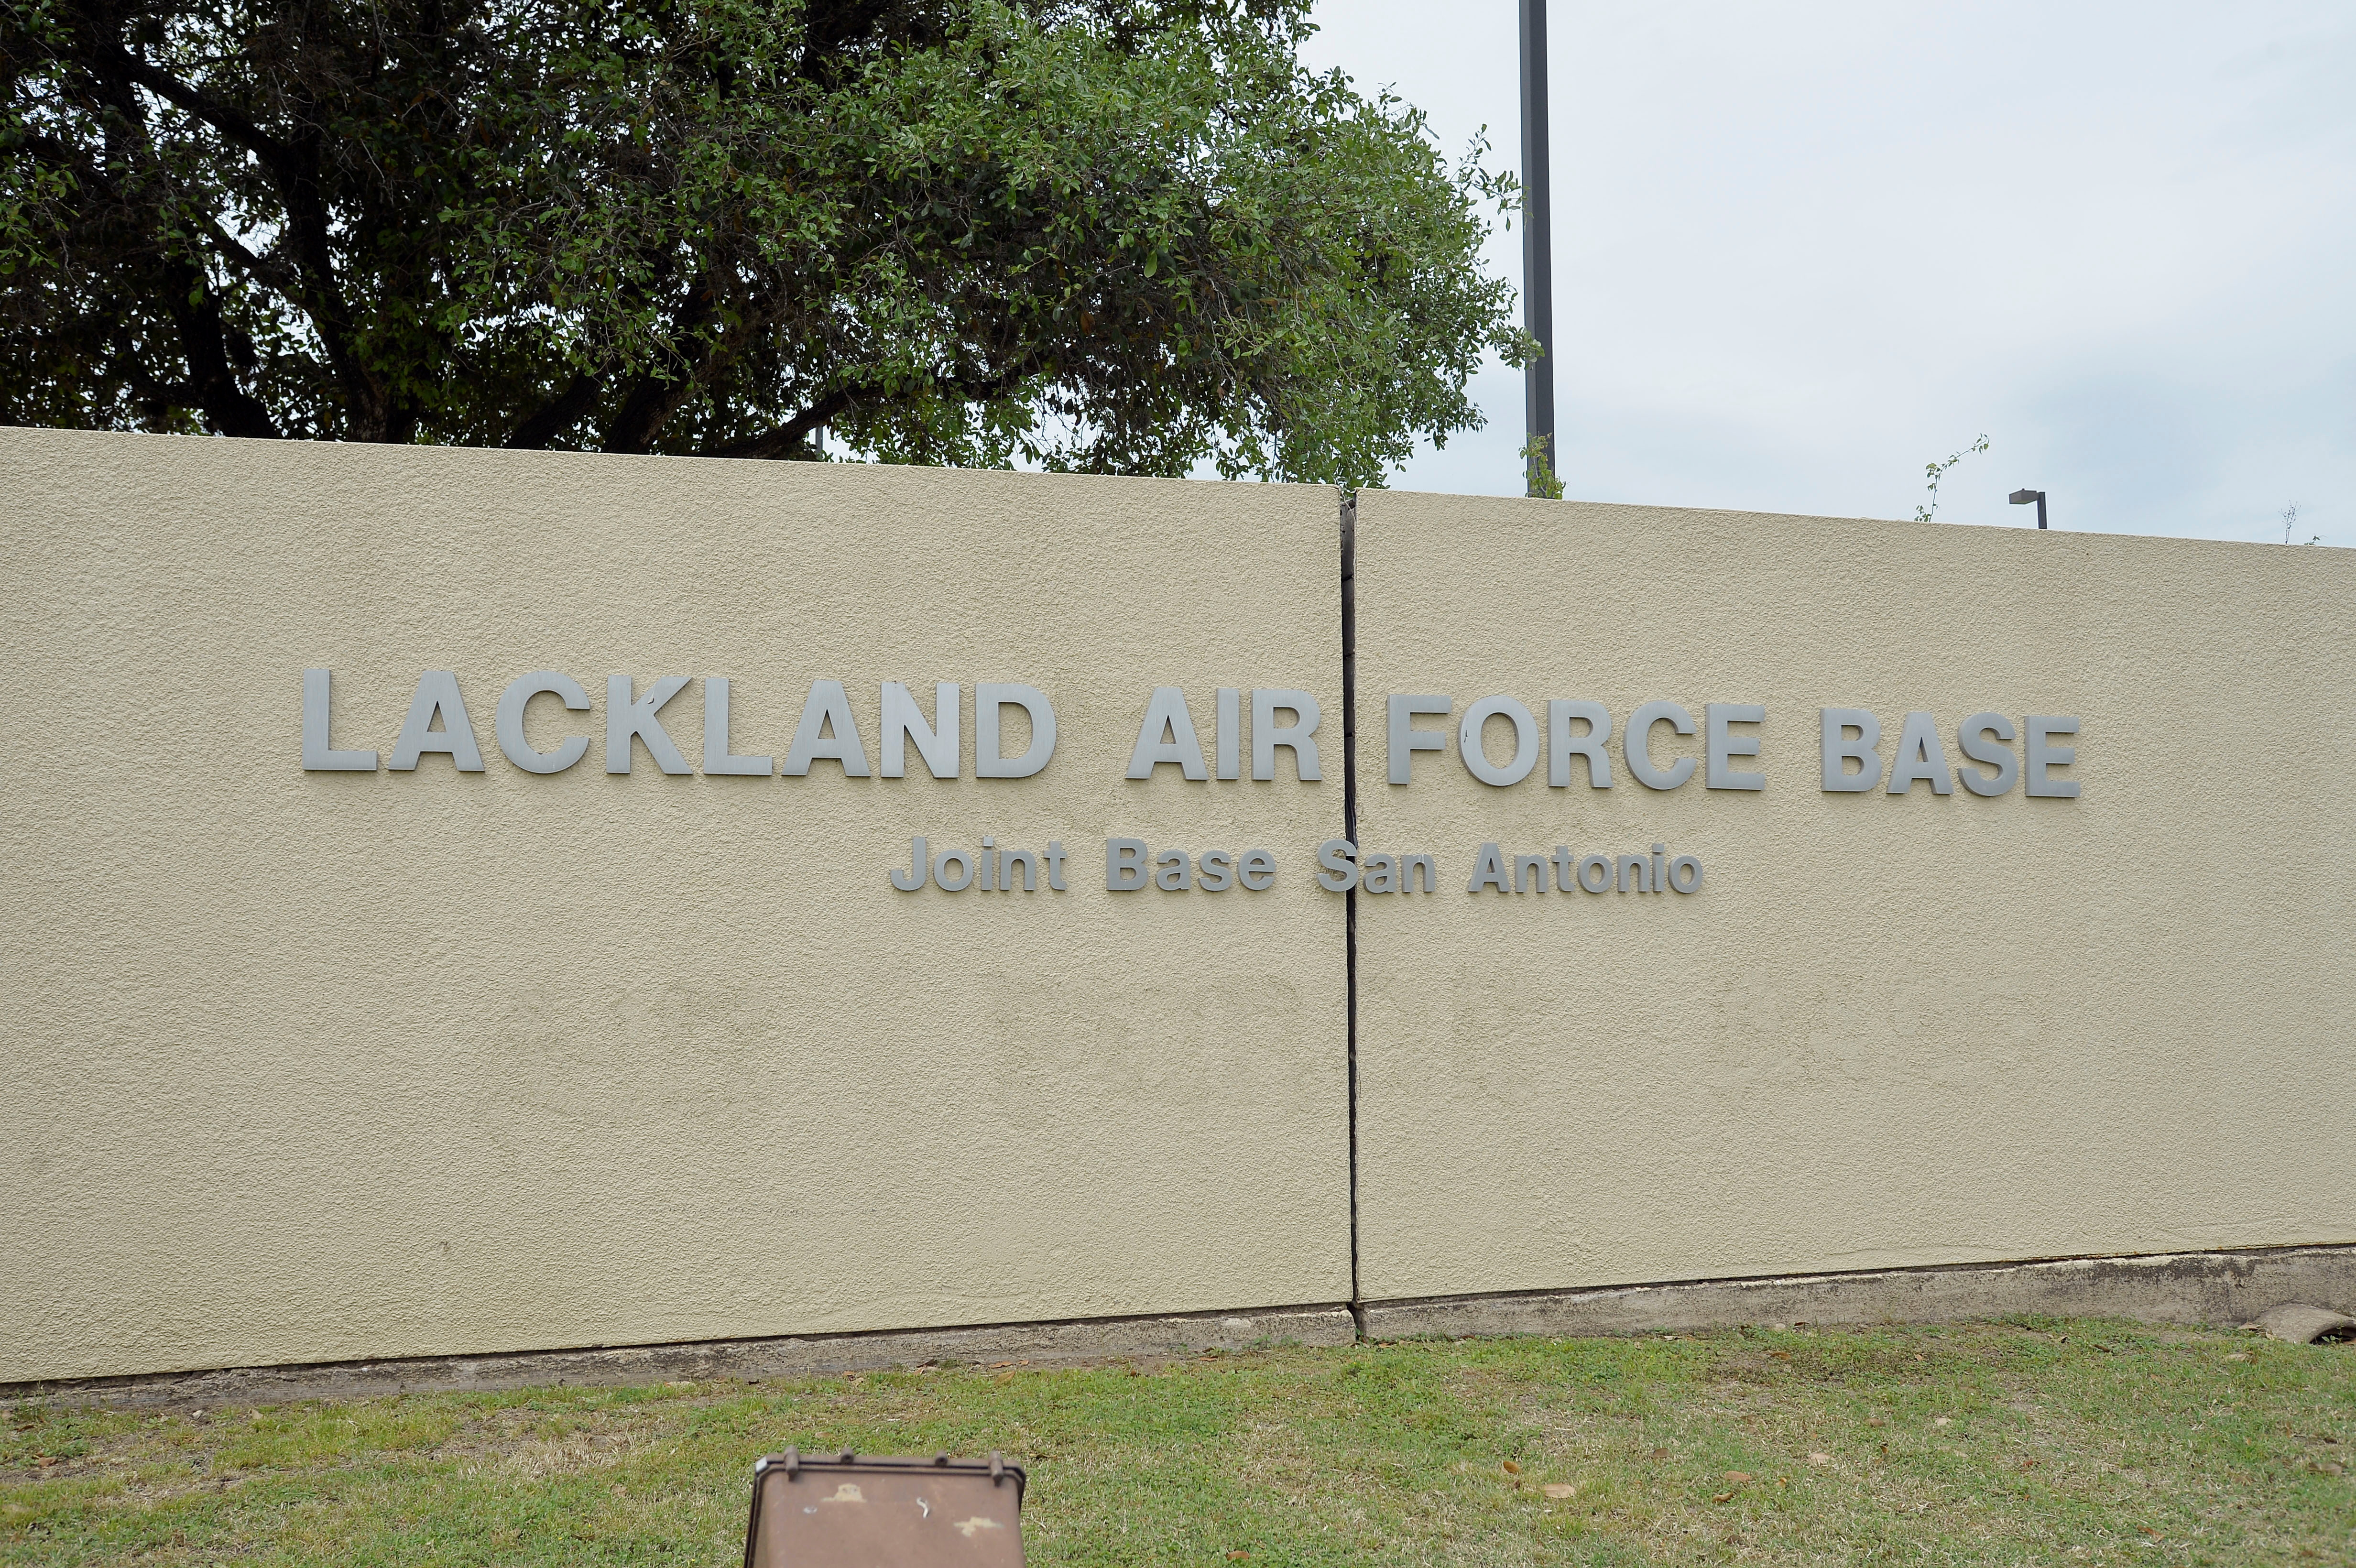 The Annex Gate entrance sign is seen at Lackland Air Force Base in San Antonio, Texas April 8, 2016.     REUTERS/Darren Abate/File Photo